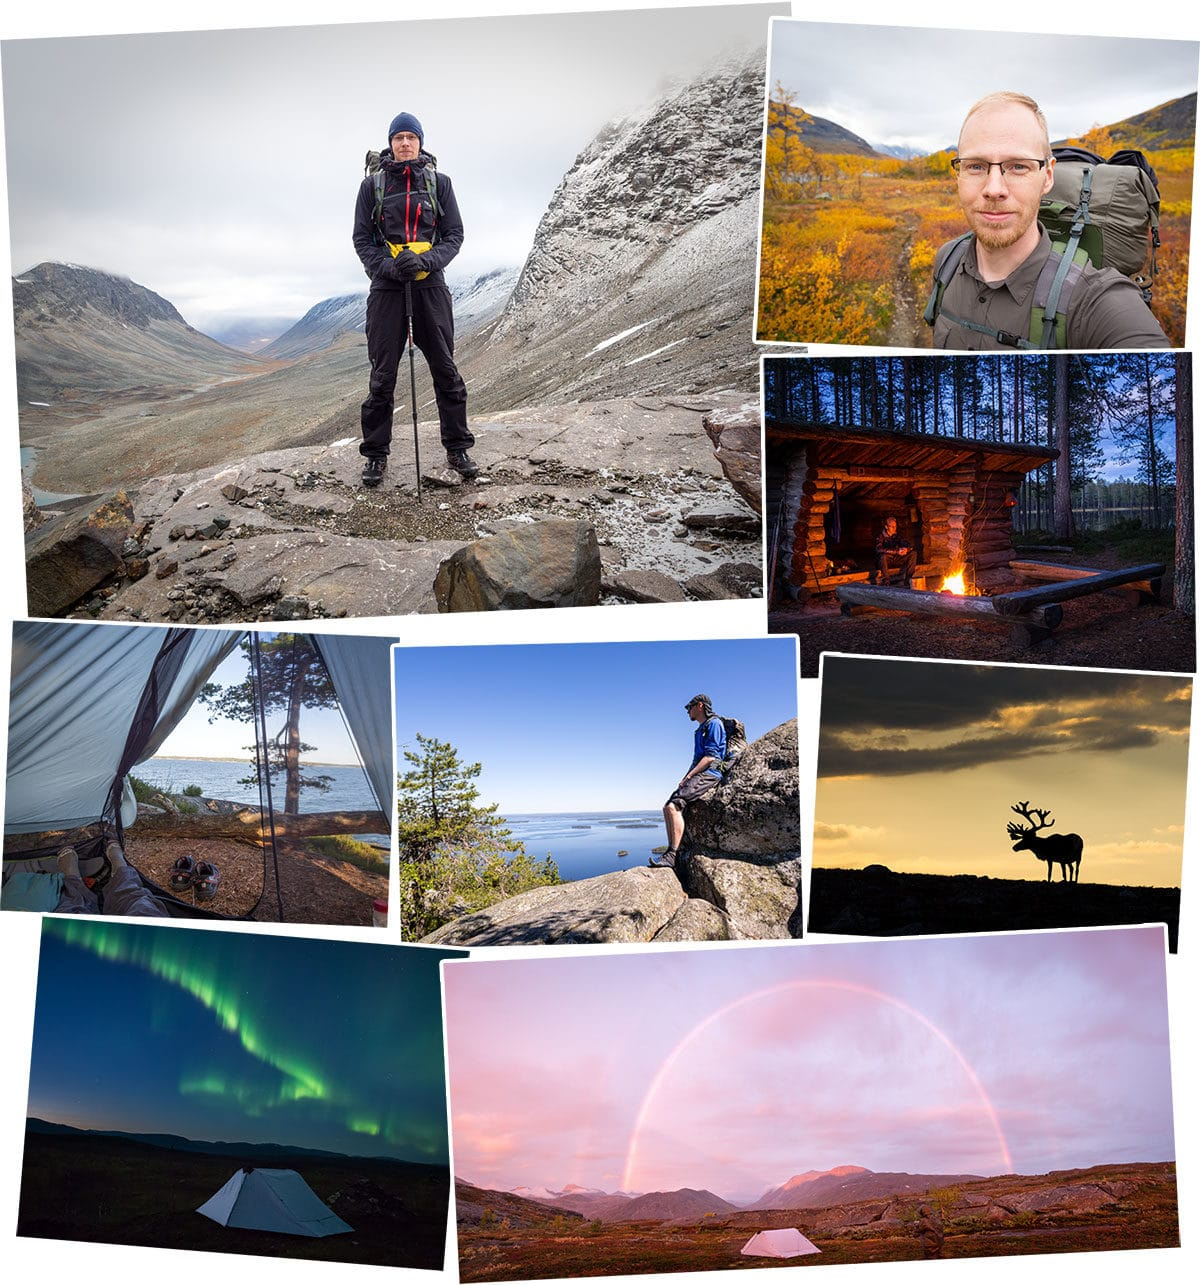 Adventures and hiking in nature, from Southern Finland to Lapland, in national parks and in wilderness. Finland, Sweden, Norway. Part 1 of 2.